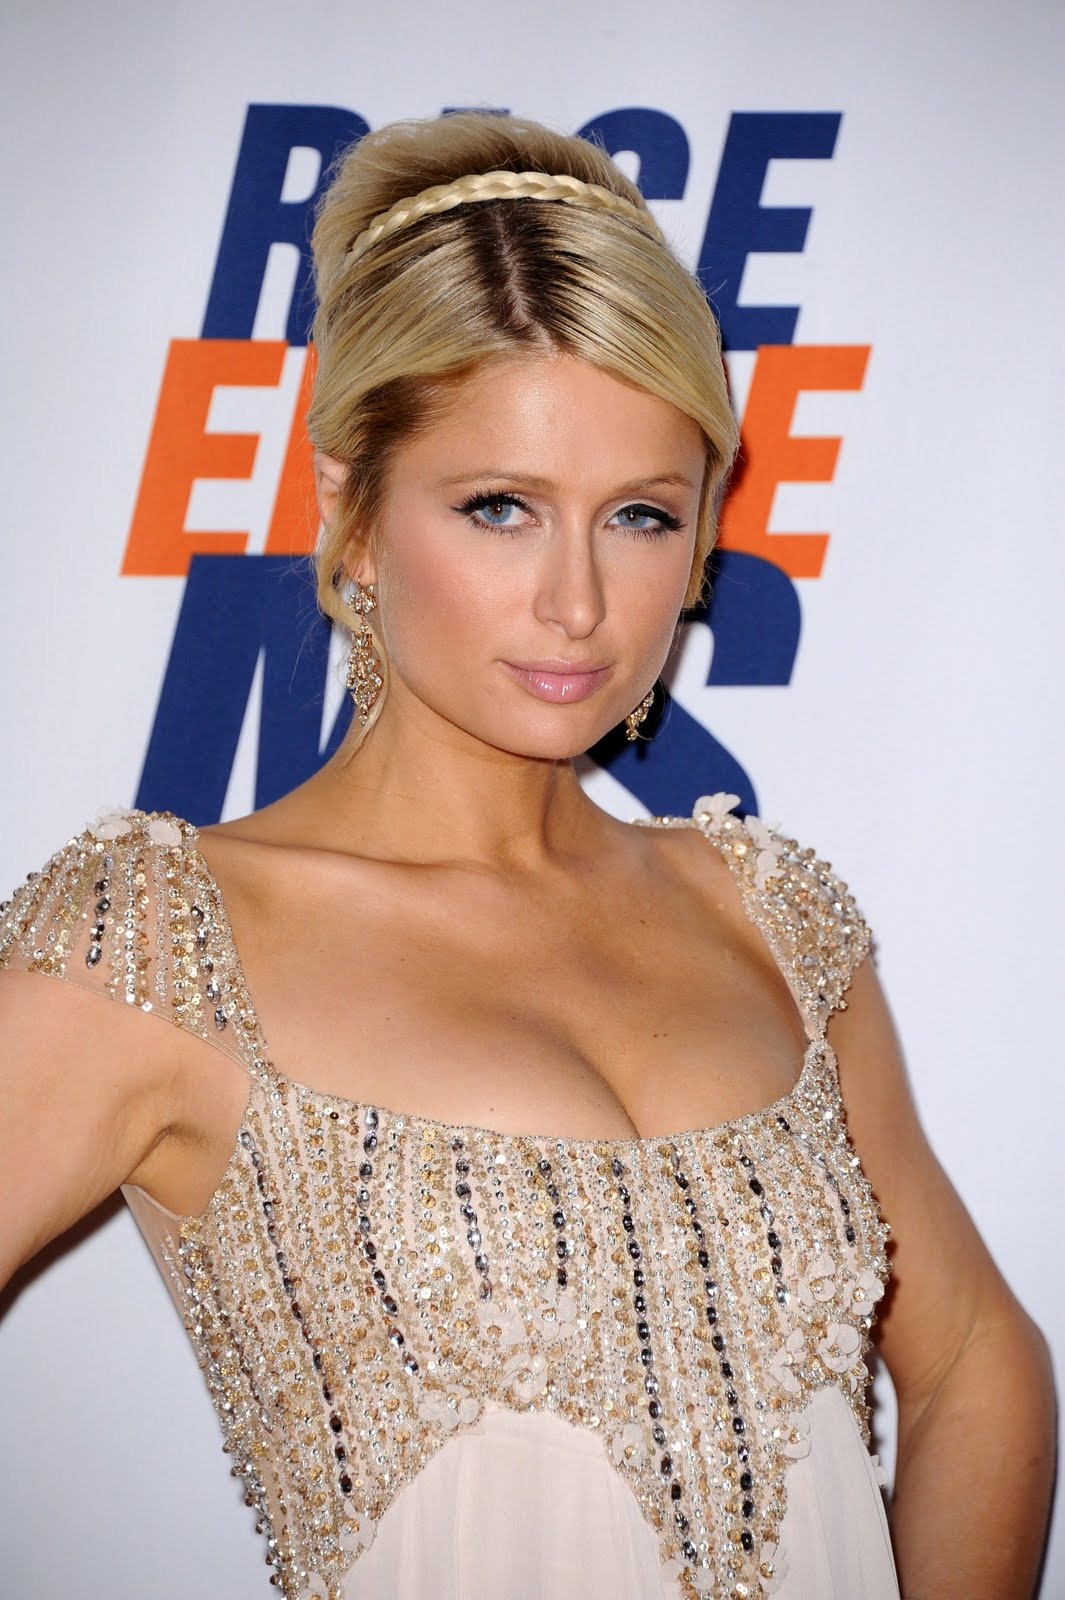 http://1.bp.blogspot.com/-UzF_h5rbJlc/Tb2CwHhZ4EI/AAAAAAAAFIU/FfRAKhUmEIs/s1600/Paris-Hilton--at-18th-Annual-Race-To-Erase-MS-010.jpg